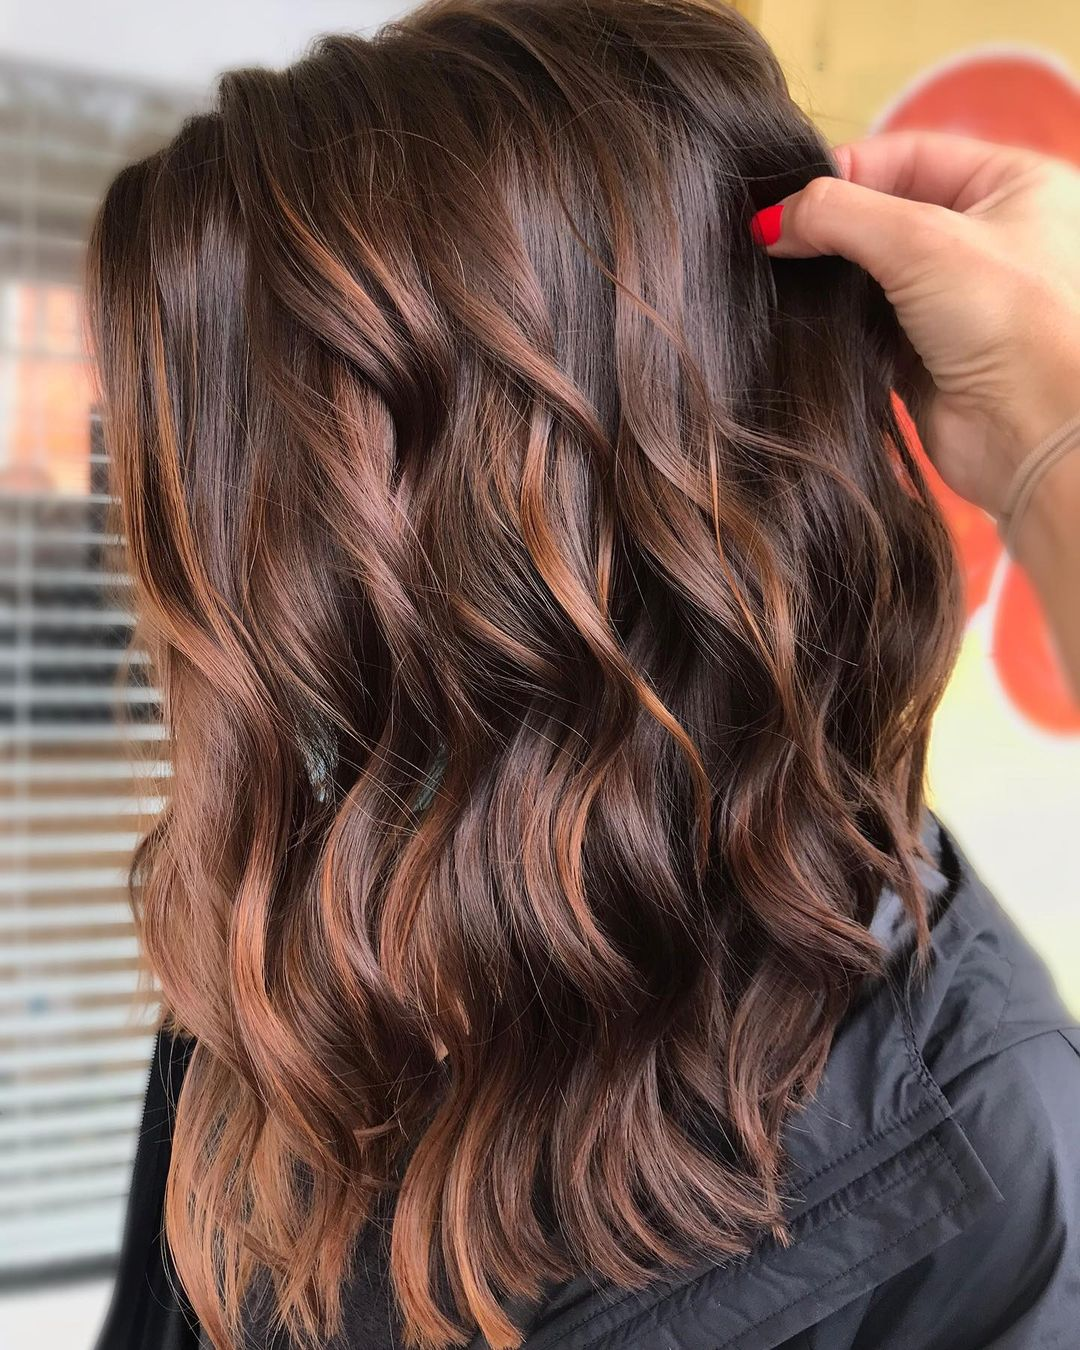 25 Most Popular Balayage Brown Hair Colors Right Now